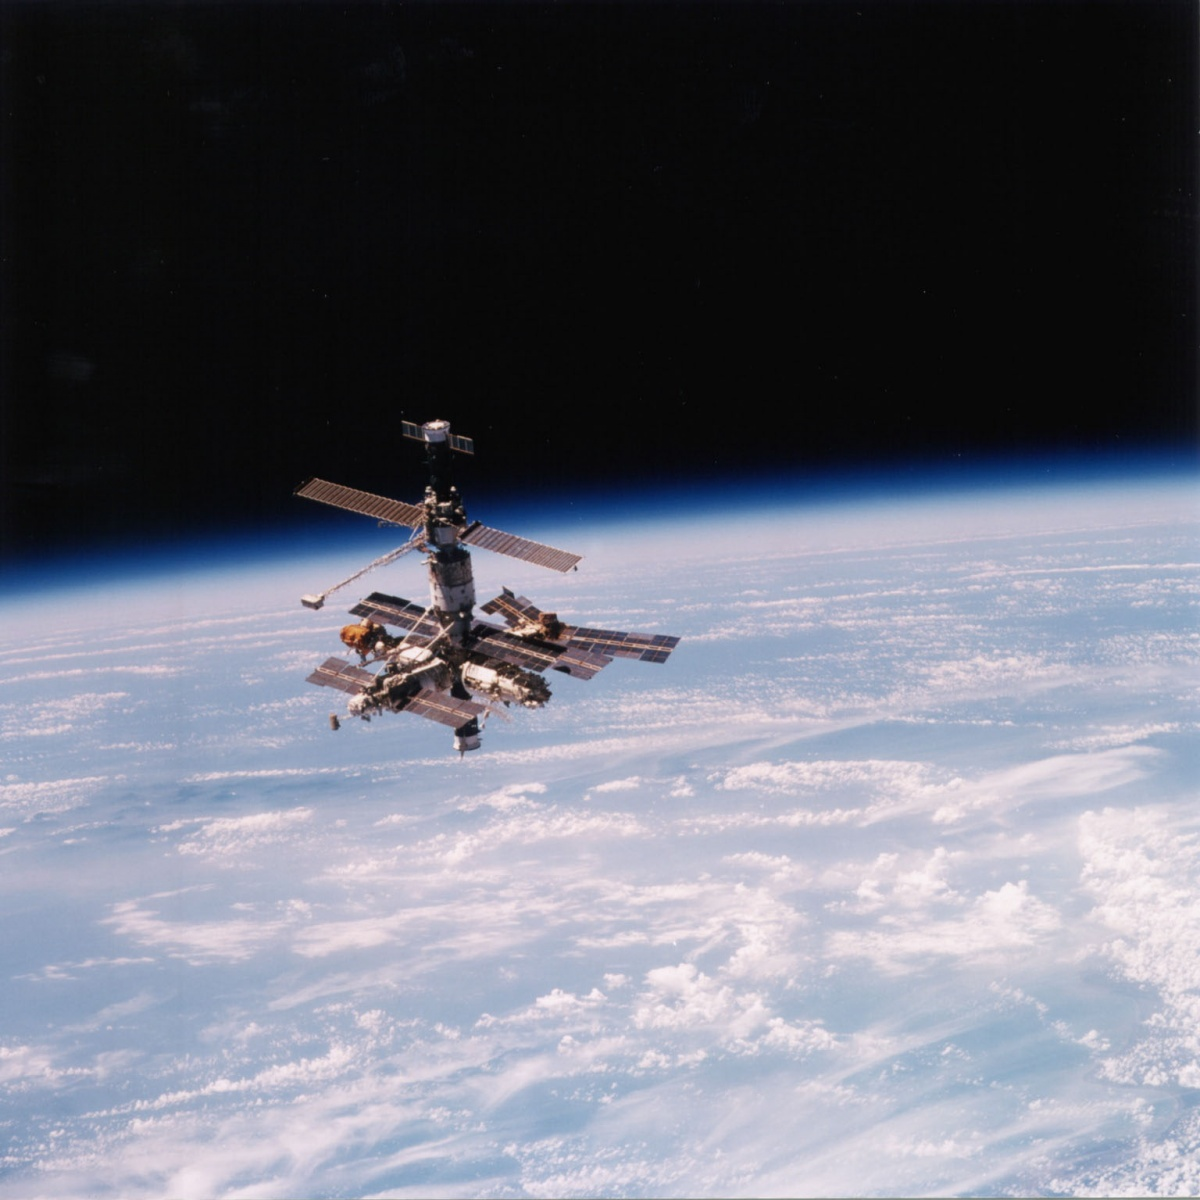 mir space station tracker - photo #40